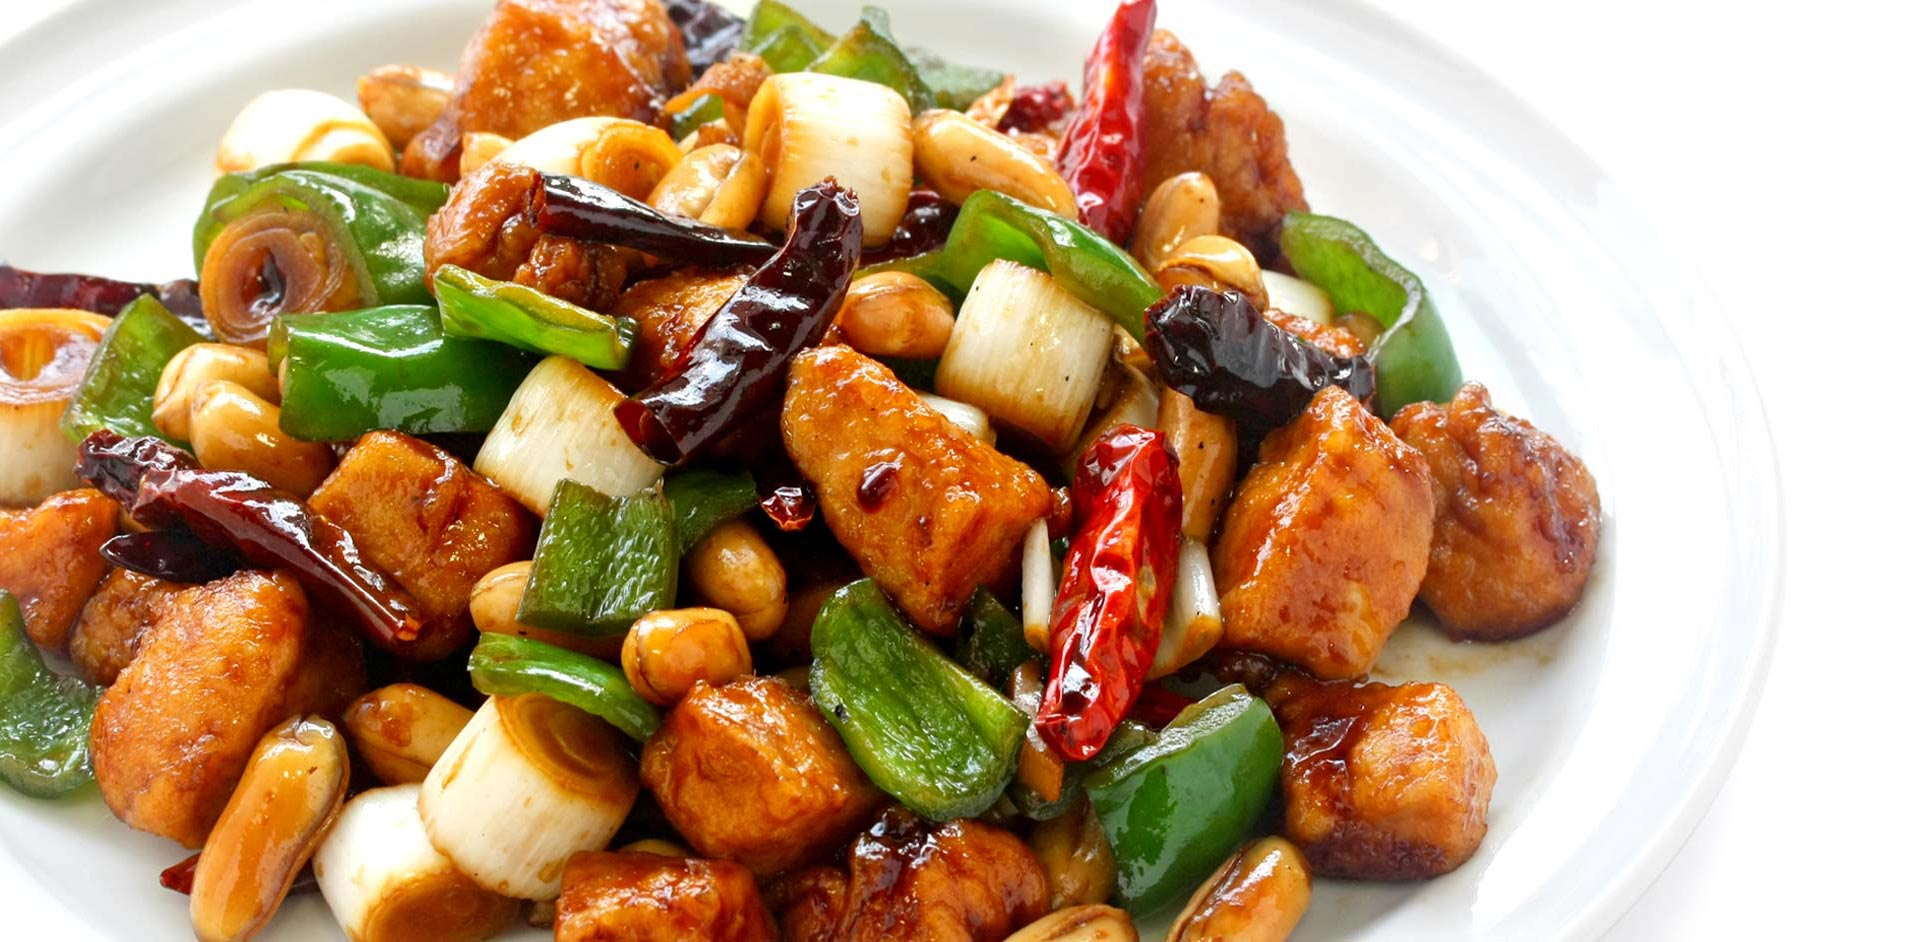 What Is the Difference Between Hunan and Szechuan